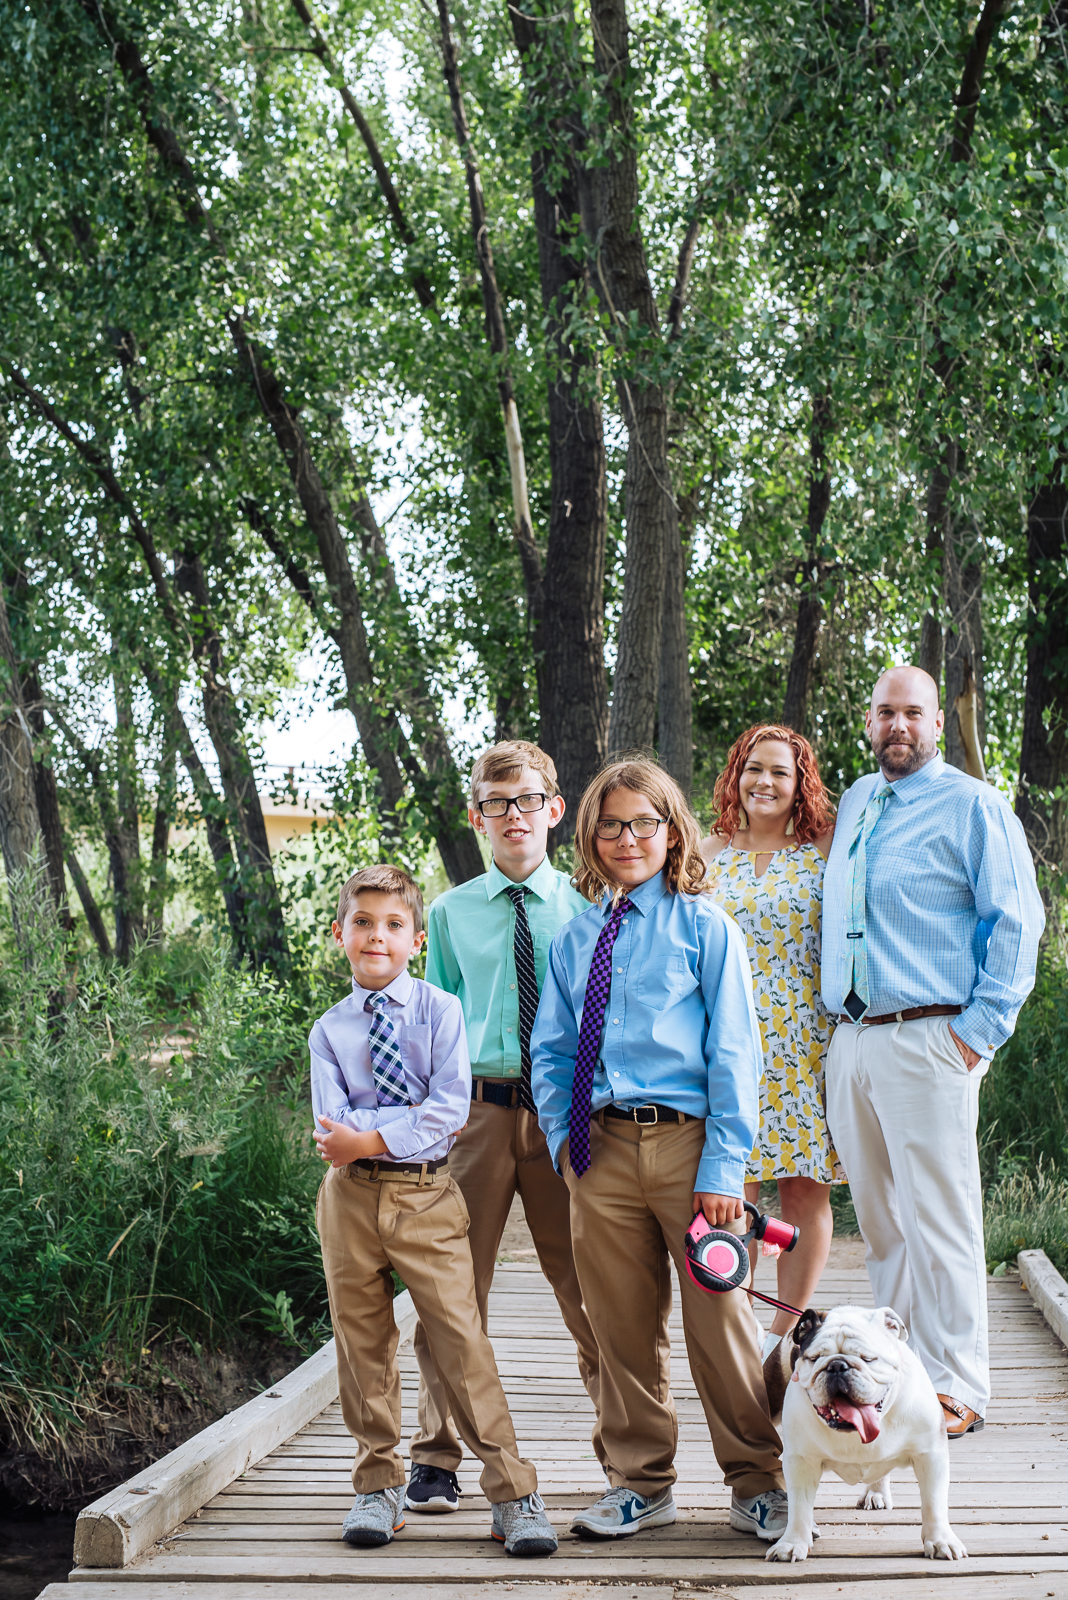 The Winters Family   Family Photo   South Platte Park   From the Hip Photo